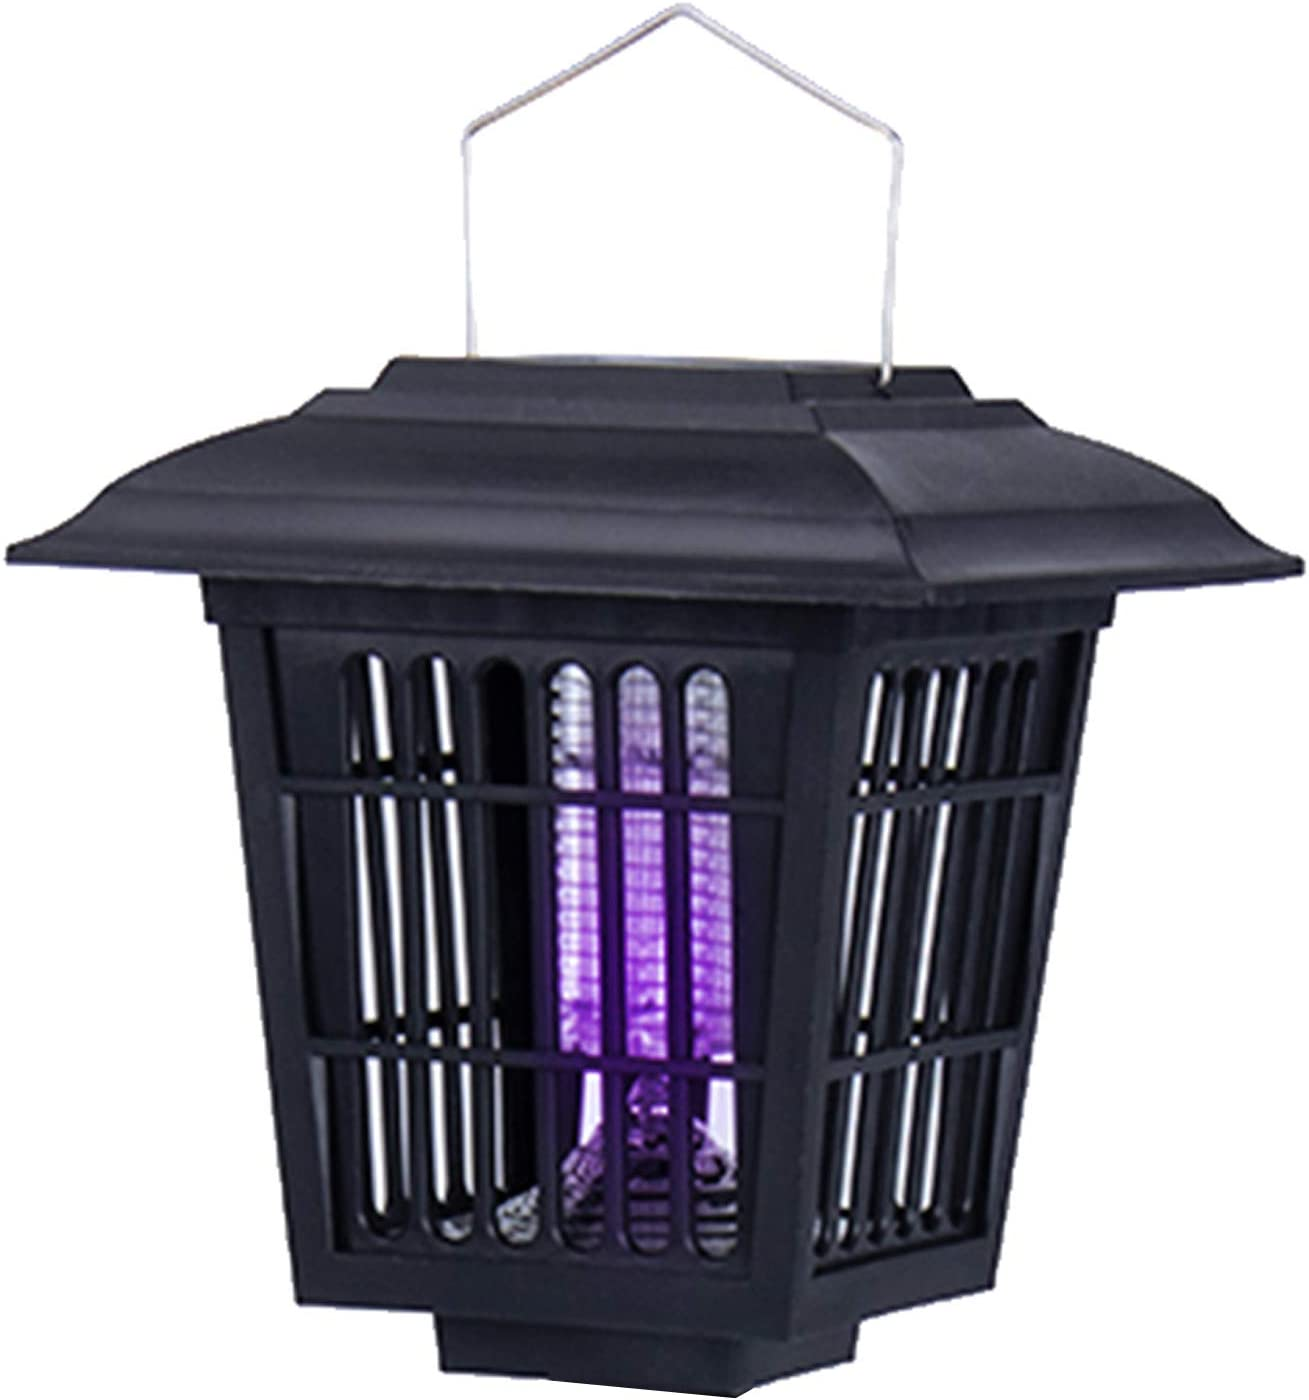 YIER Solar-Powered Outdoor Insect Killer/Bug Zapper/Mosquito Killer- Hang or Stick in The Ground - Dual Modes - Bug Zapper & Garden Light Function